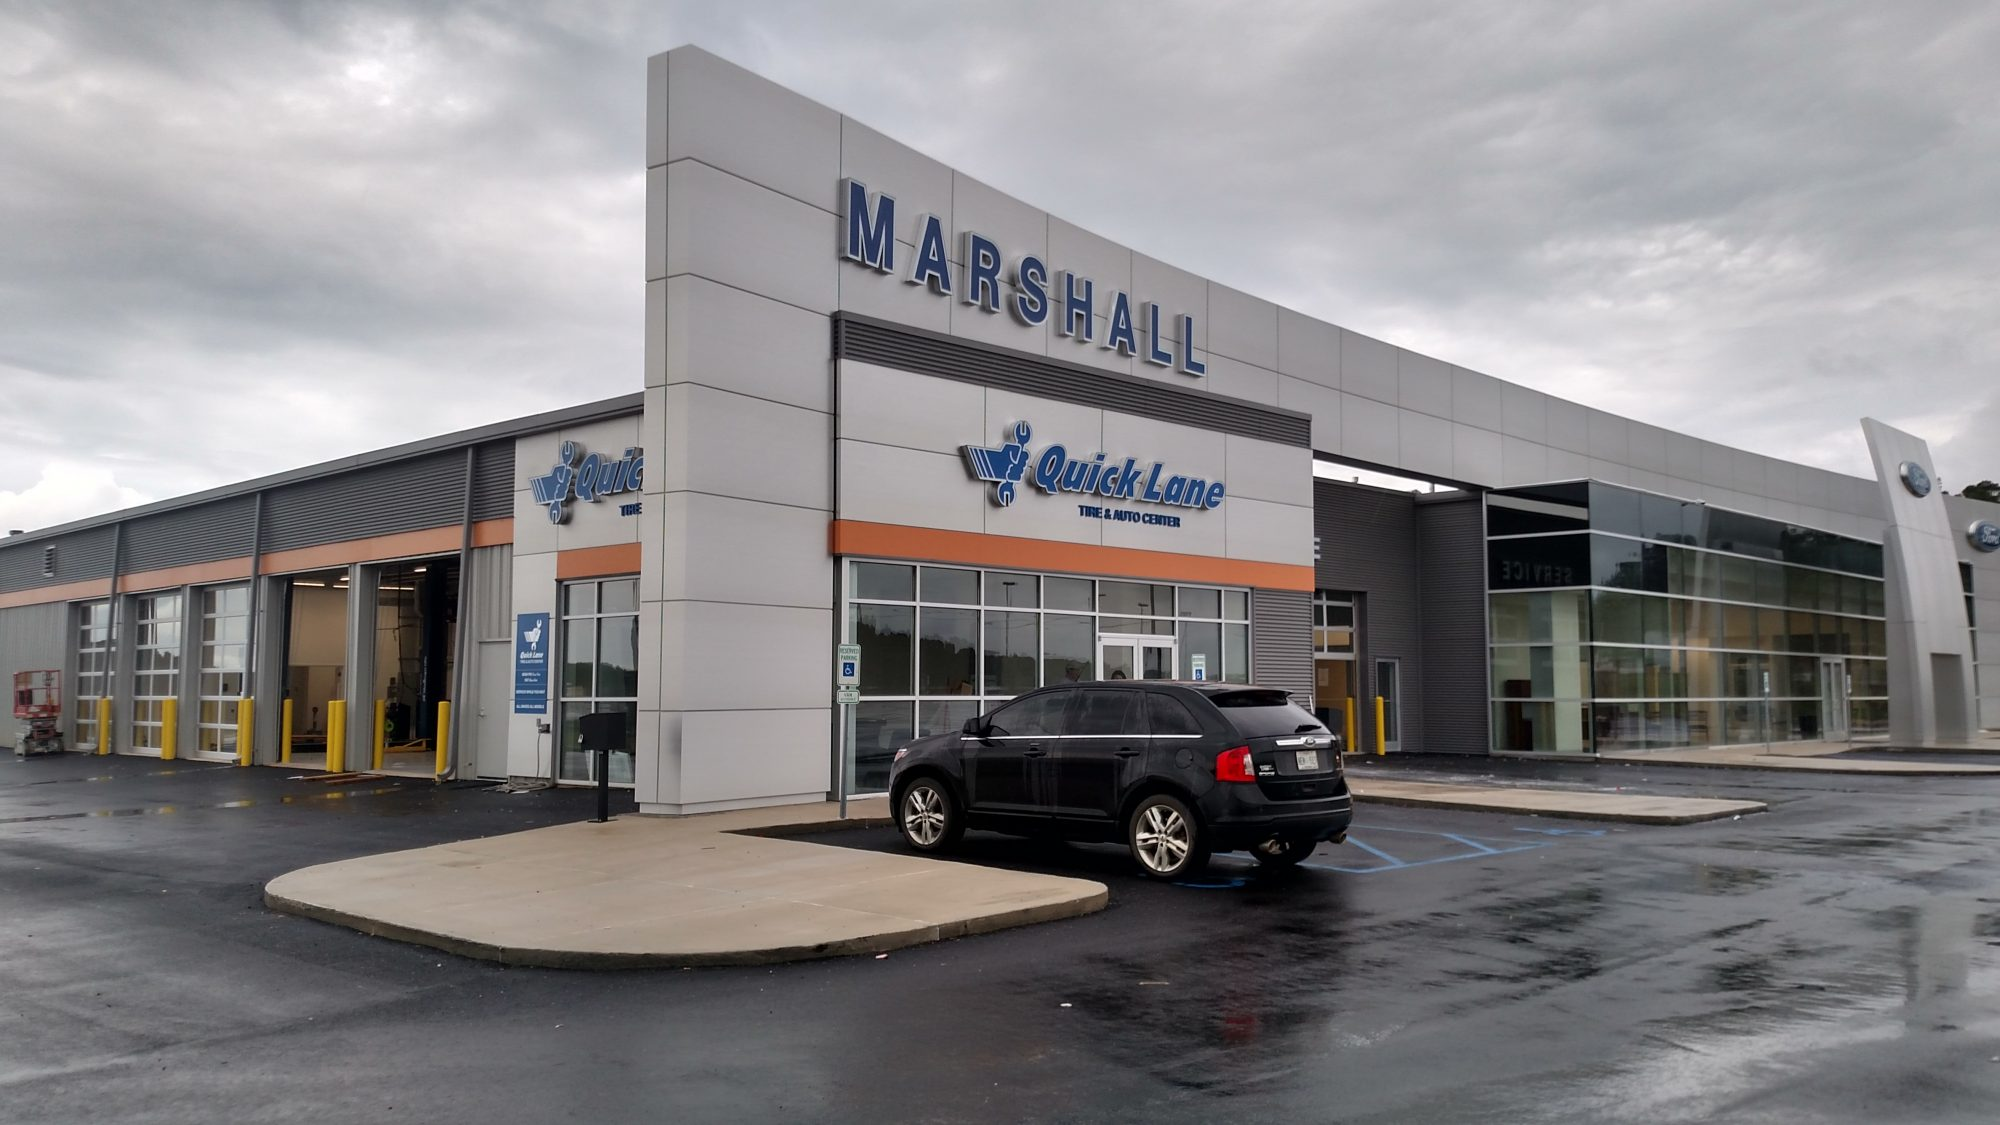 Marshall Ford Philadelphia Ms Ccs Image Group